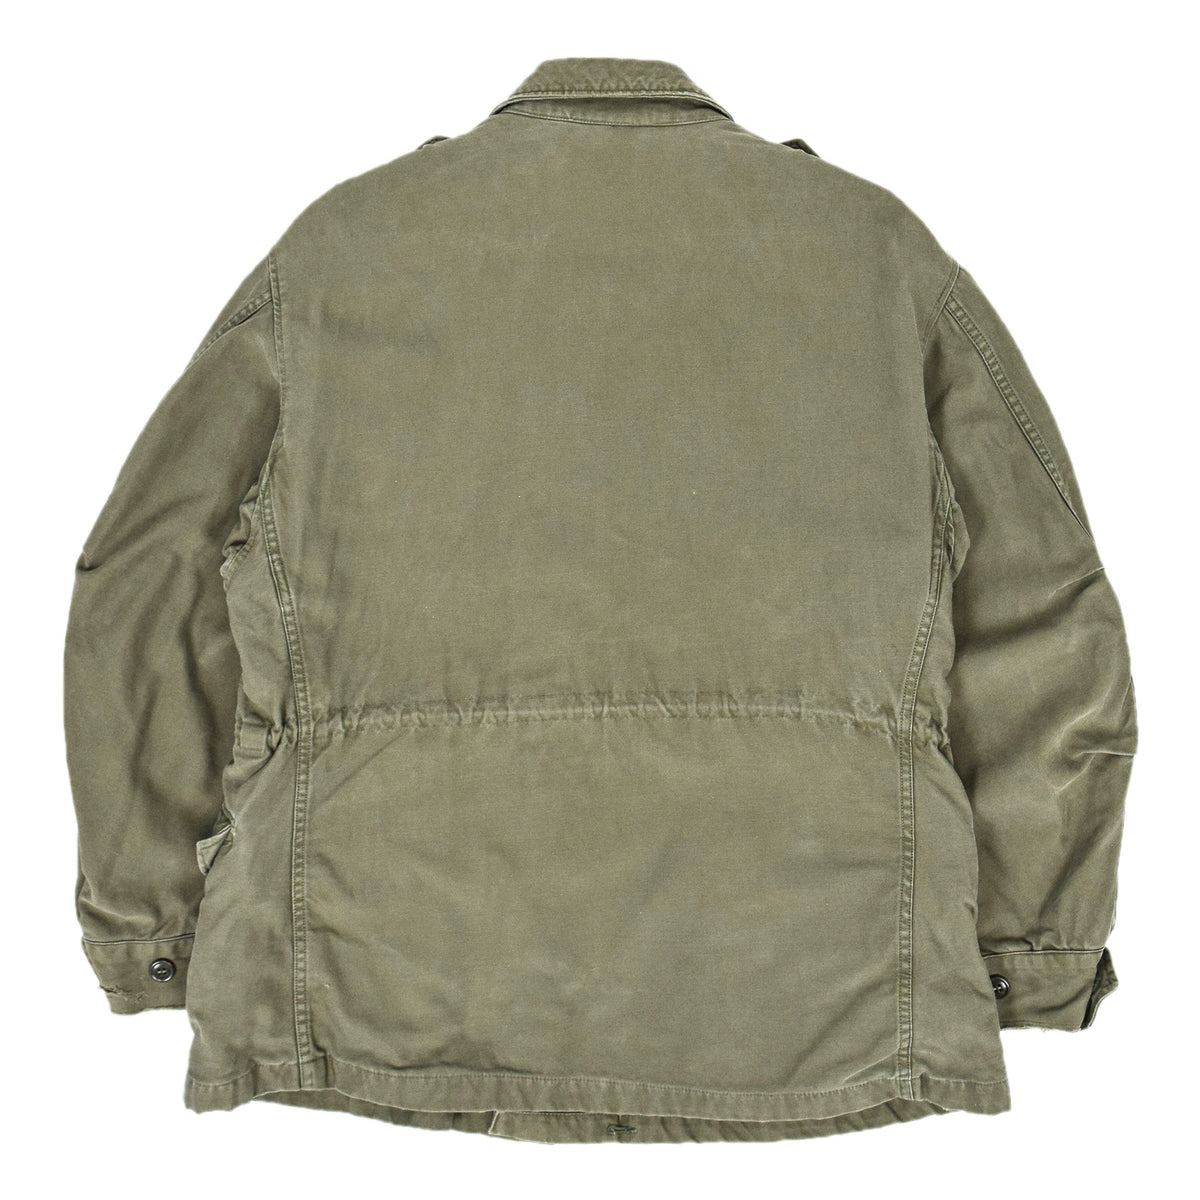 Vintage 50s M-1951 Korean War US Army Field Jacket OG-107 Olive Green M back